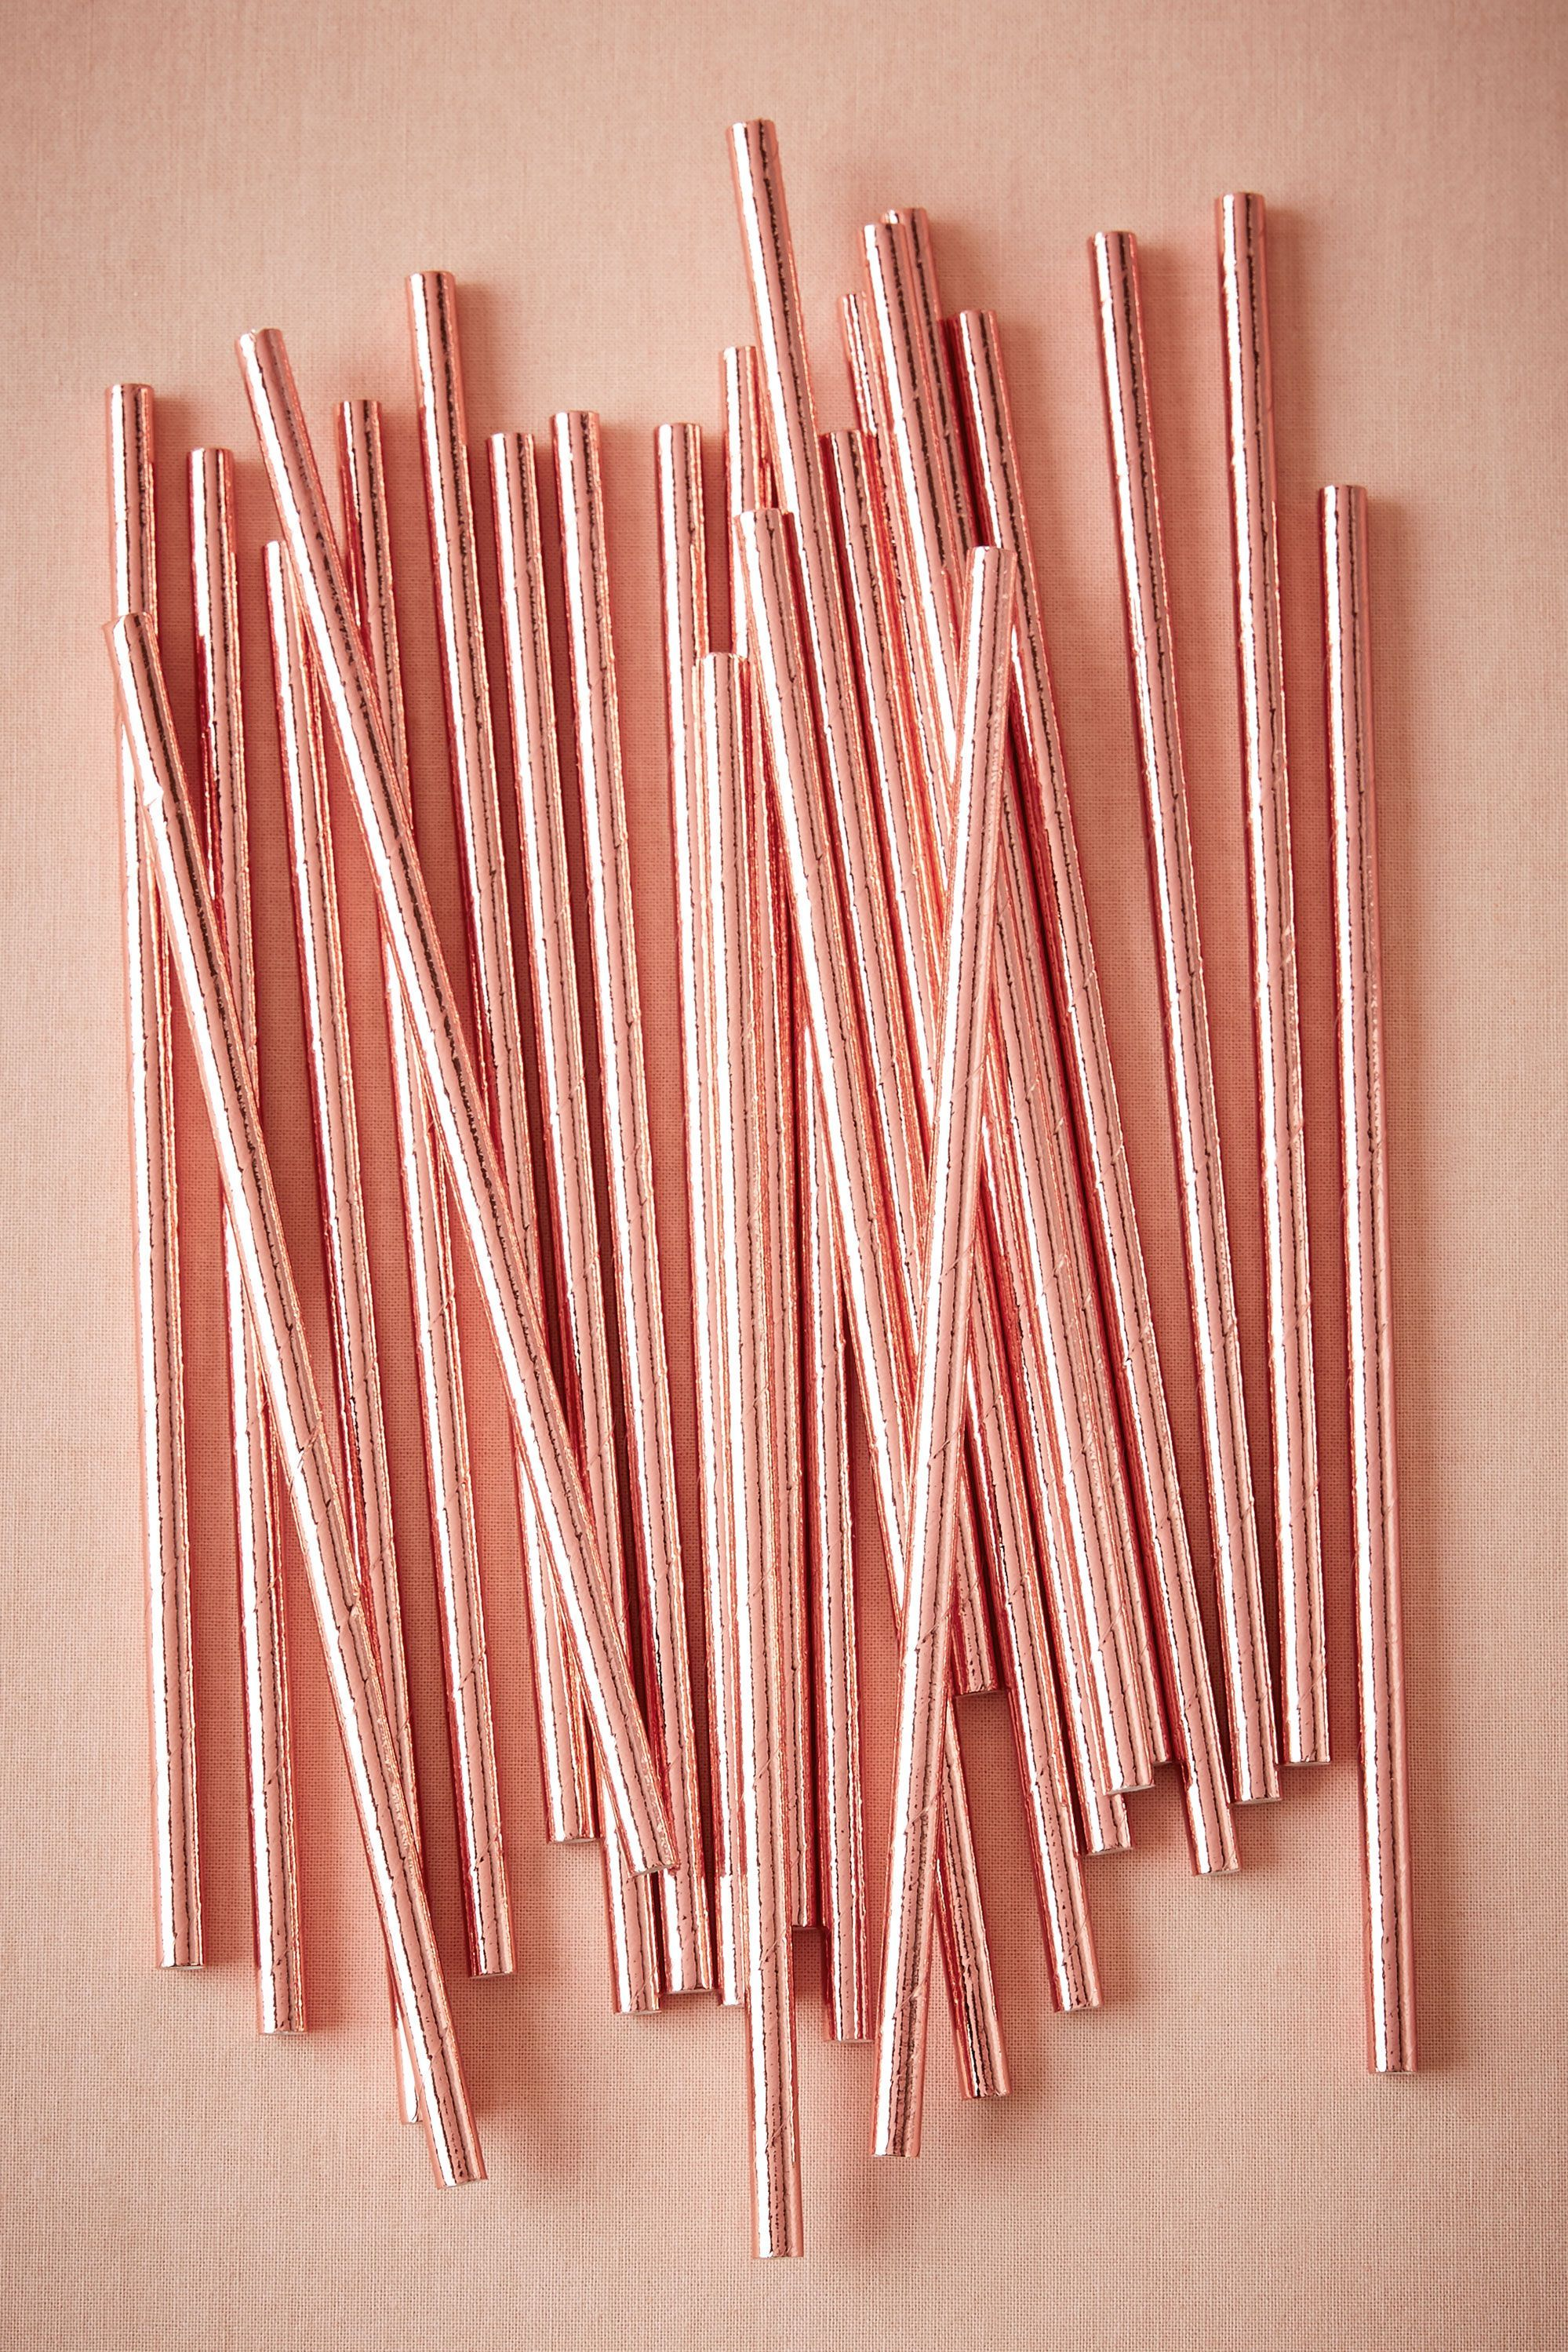 Rose Gold Straws From Bhldn With Images Rose Gold